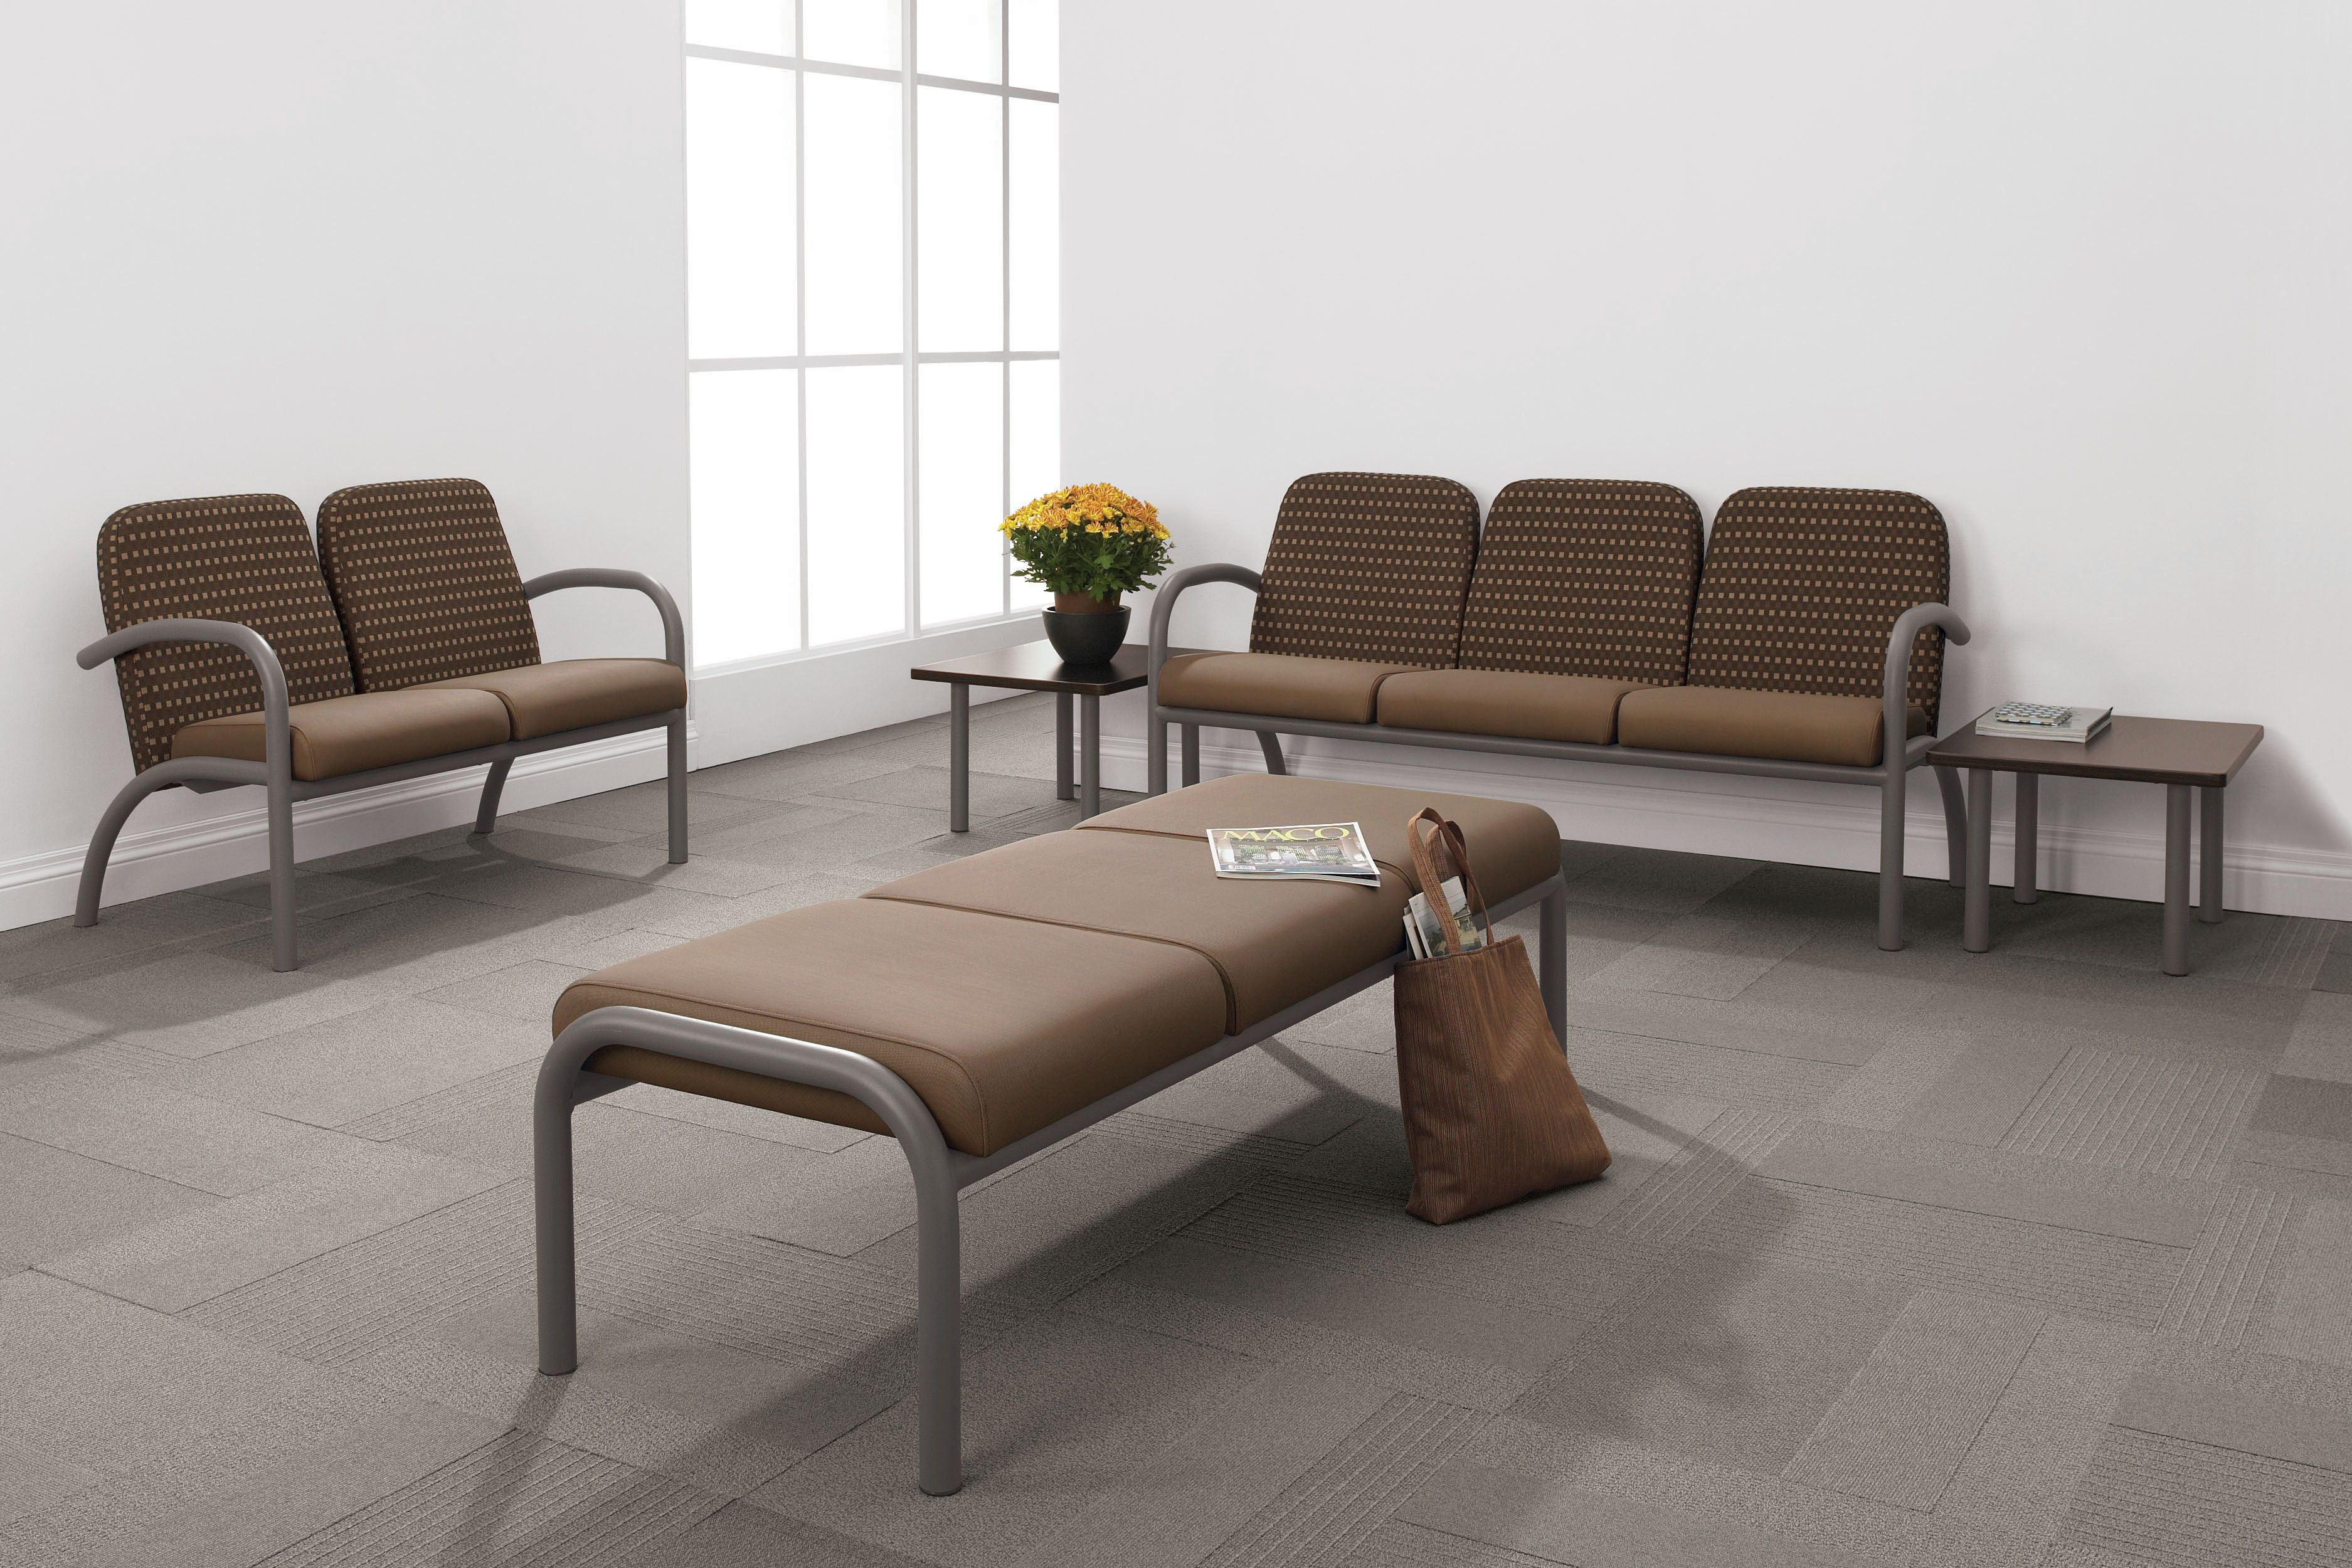 Aubra Seating Is Ideal For A Lounge Or Lobby Area It Is An